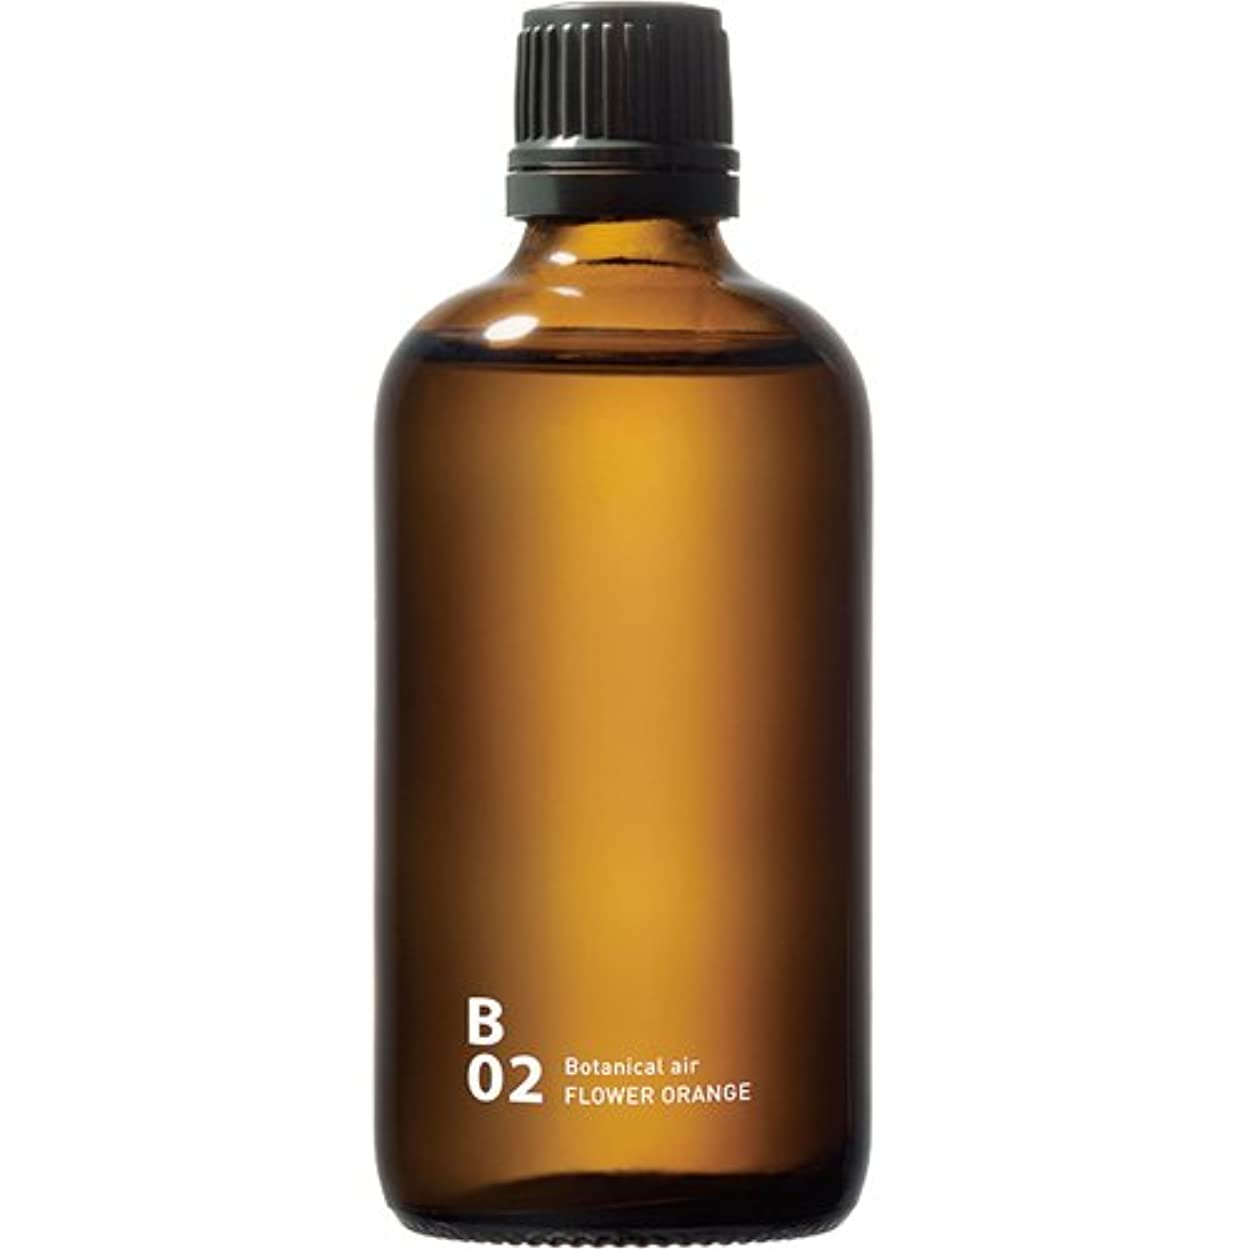 B02 FLOWER ORANGE piezo aroma oil 100ml